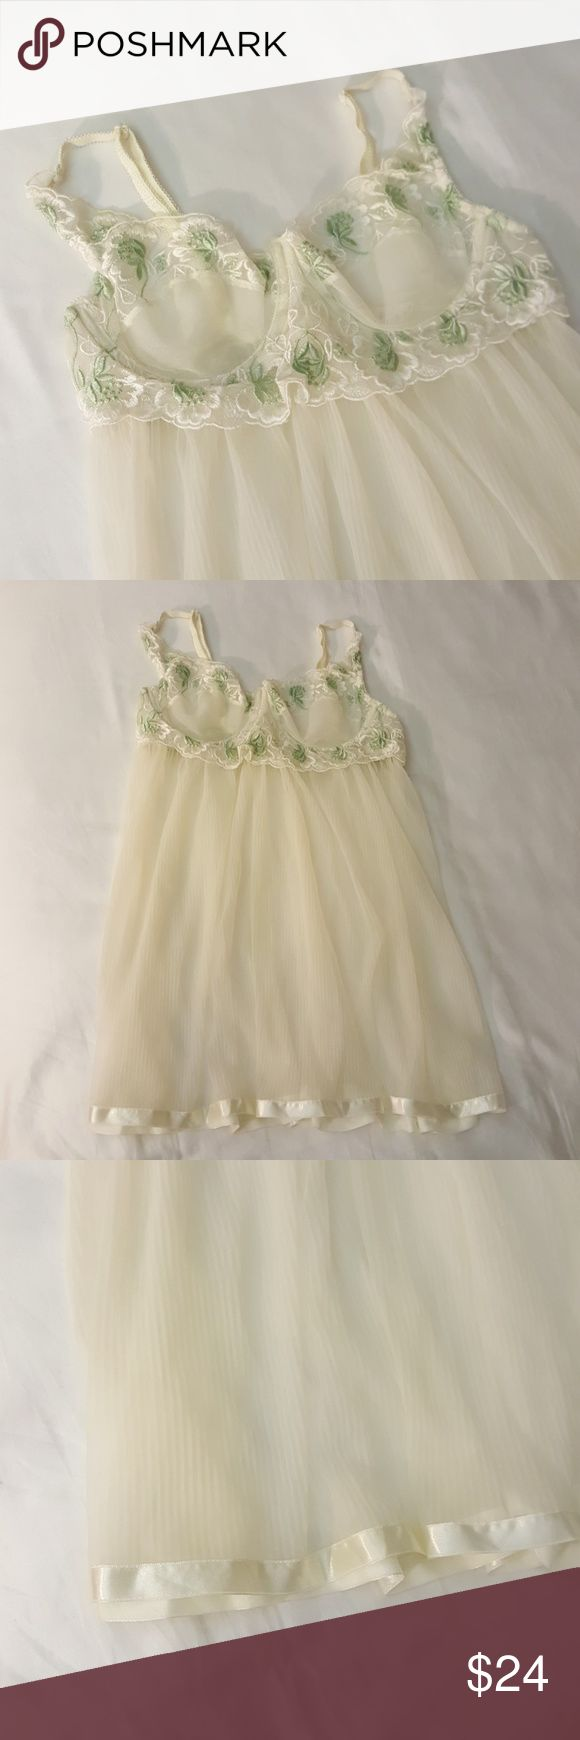 VS Babydoll Chemise Lingerie Nightie VS Babydoll Chemise Lingerie Nightie. Underwire pushup bra, adjustable straps, white and celery green floral embroidered lace and satin detail trim. Like new! Victoria's Secret Intimates & Sleepwear Chemises & Slips